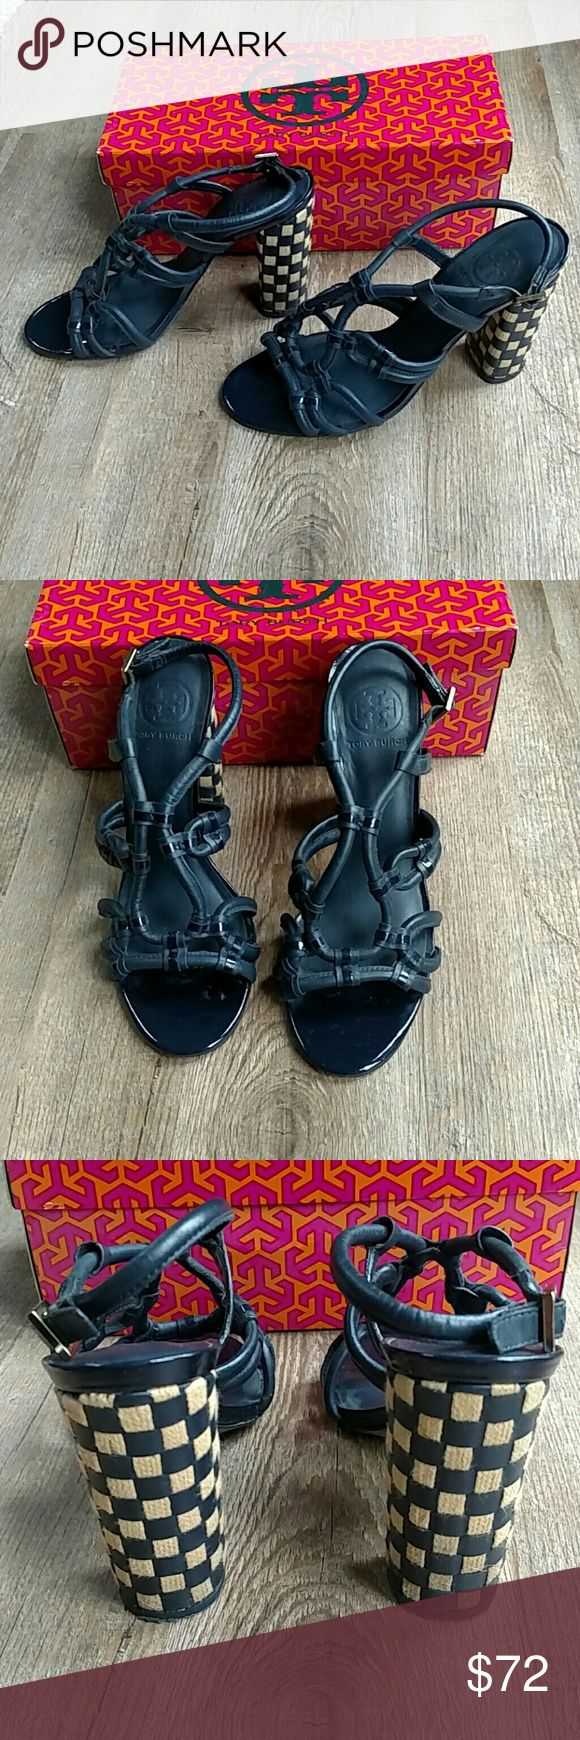 Tory Burch Layce Navy High Heel Sandal Great condition, worn about 3 times. Only issue I can see is some dirt on the inside of the heels. Leather, with fabric and leather heels. Fits on the snug size of 8.5. Will send with box but it is not the original box. Tory Burch Shoes Heels